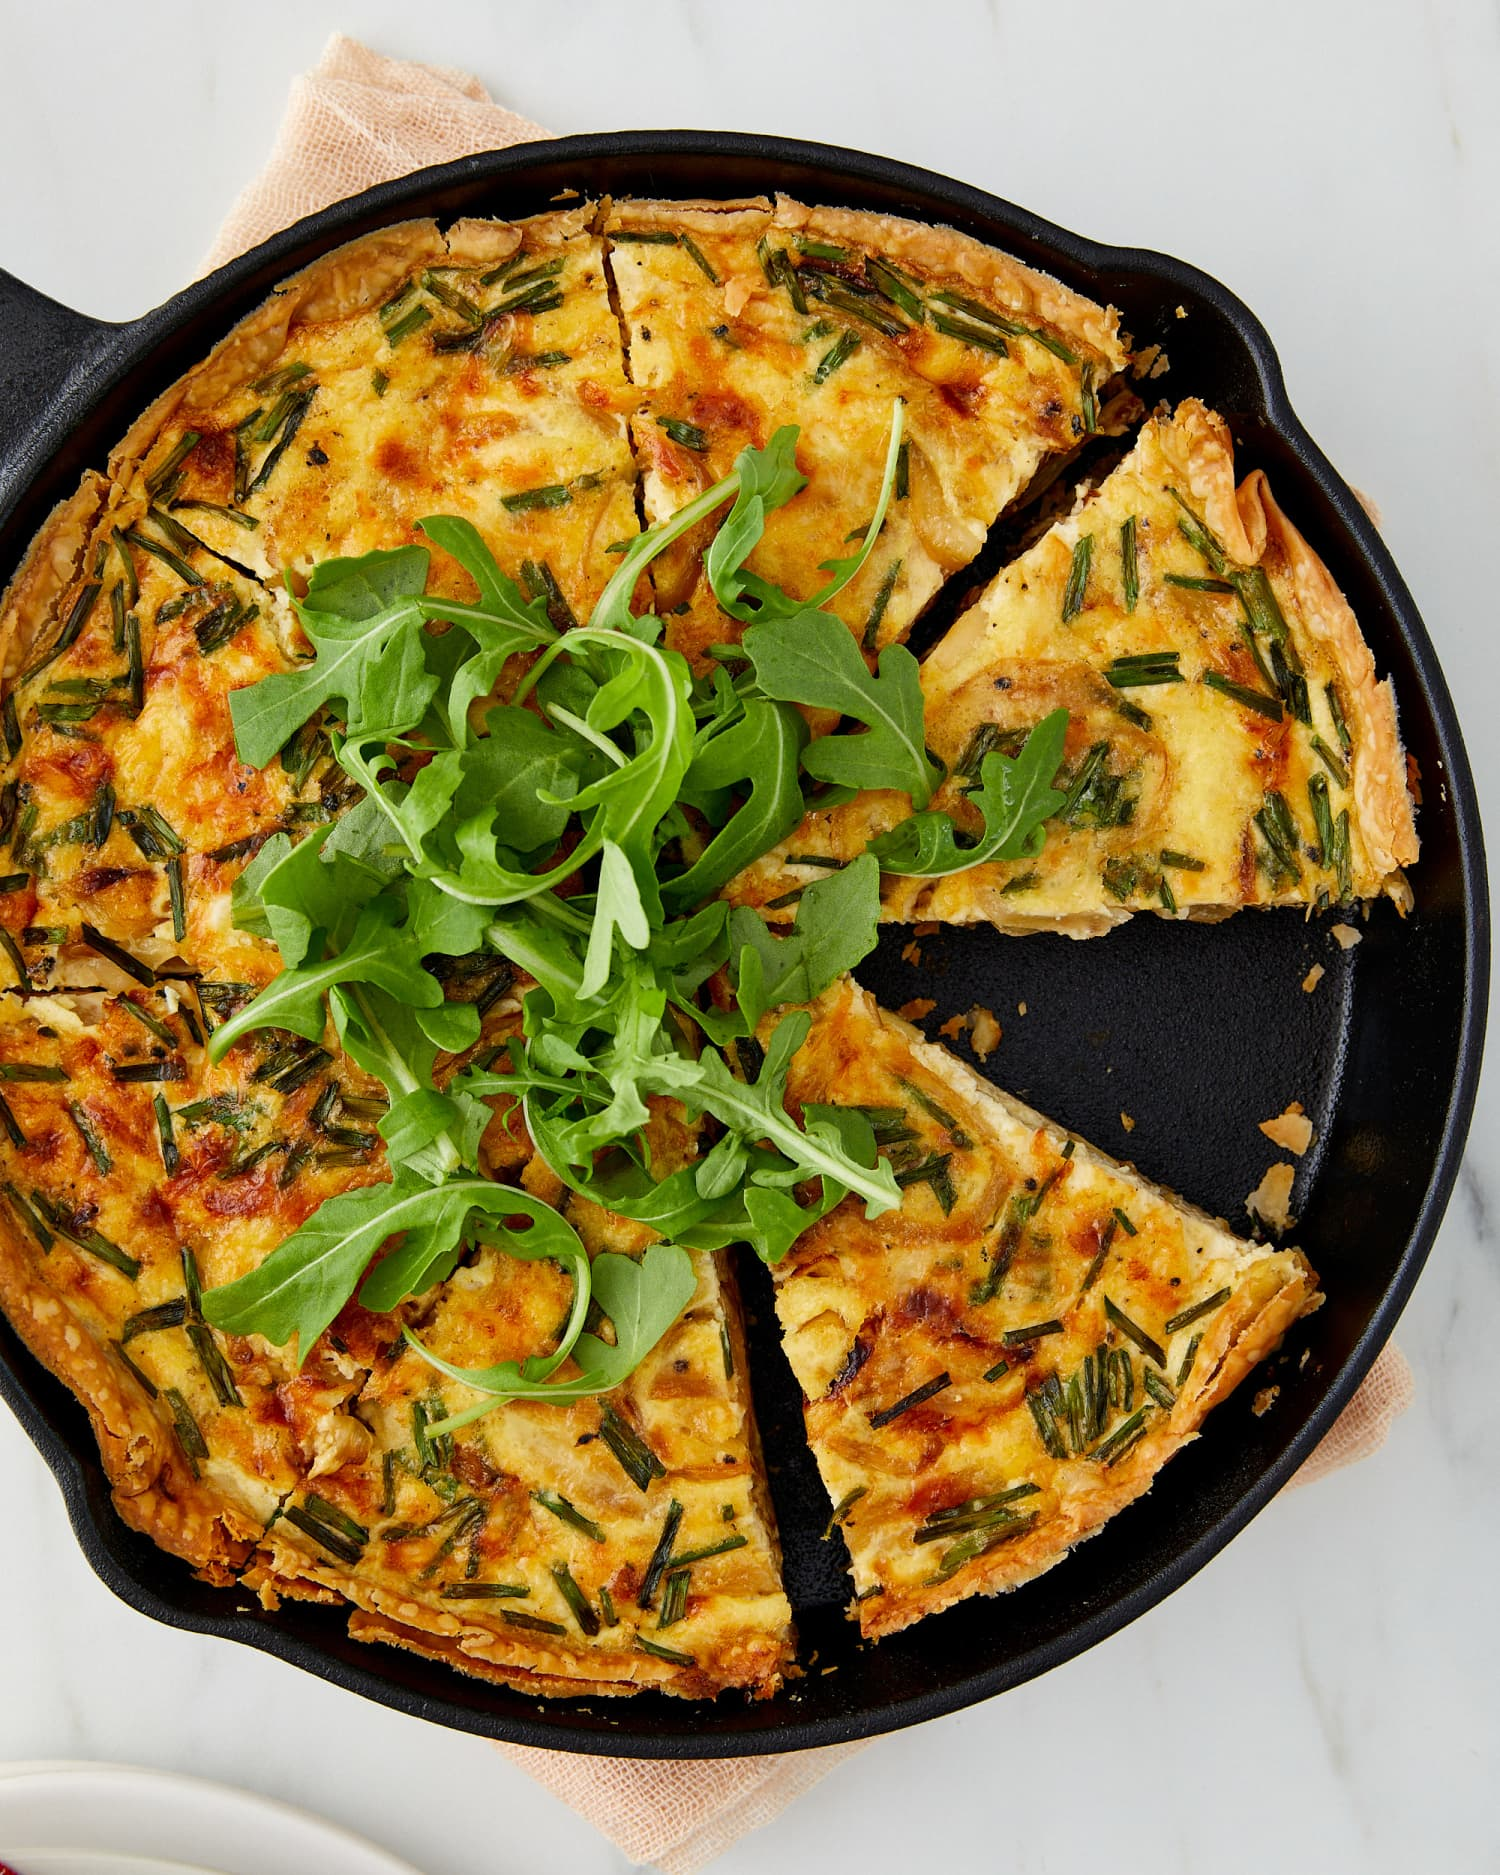 Caramelized Onion Skillet Quiche Is the Best Way to Win Brunch